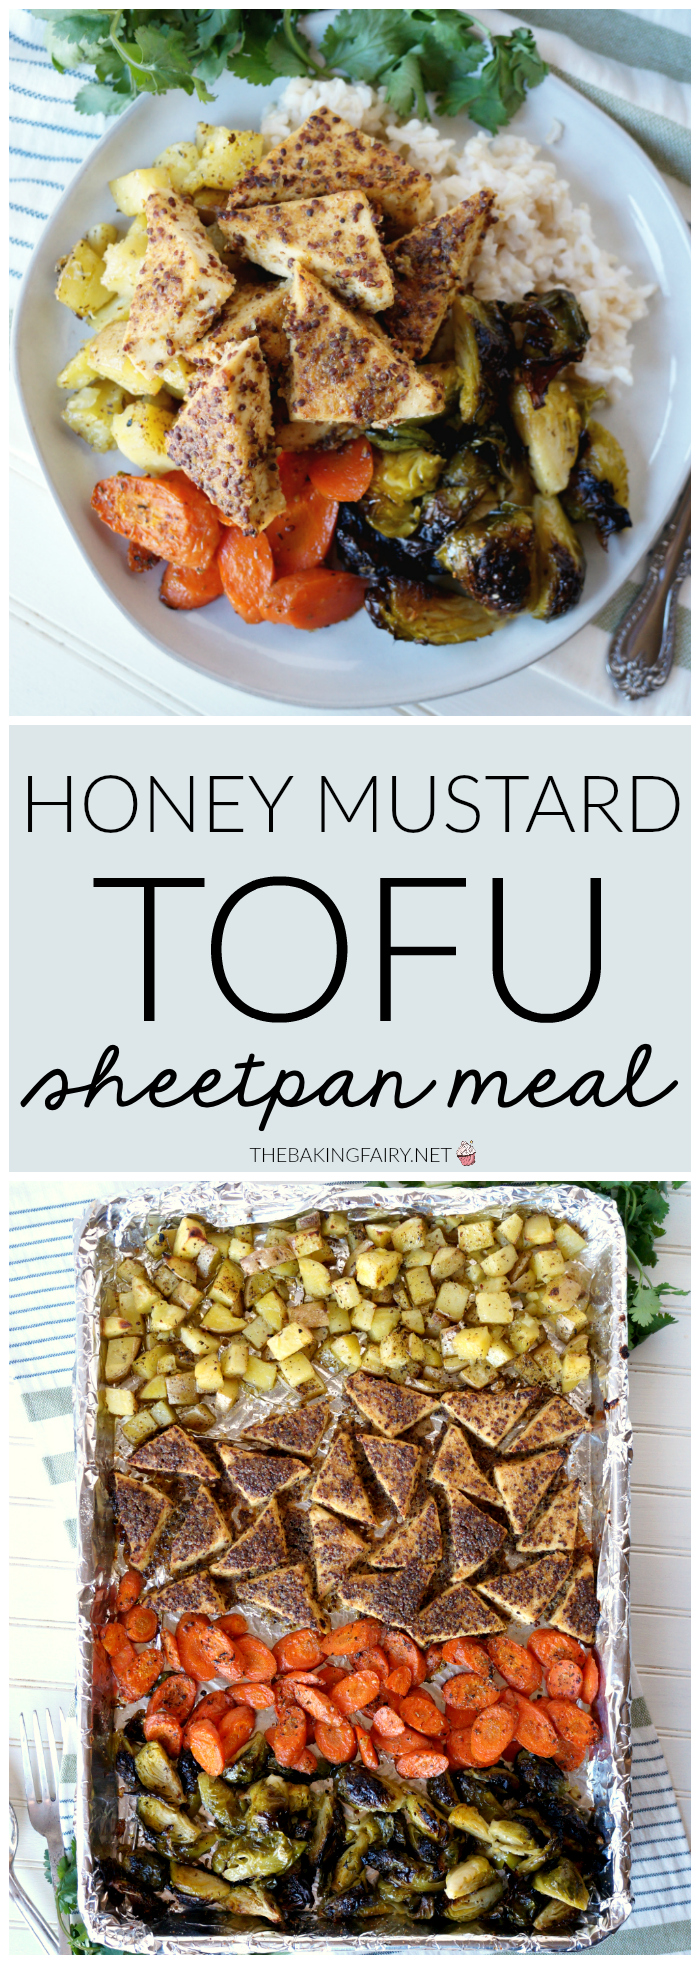 honey mustard tofu sheetpan meal | The Baking Fairy